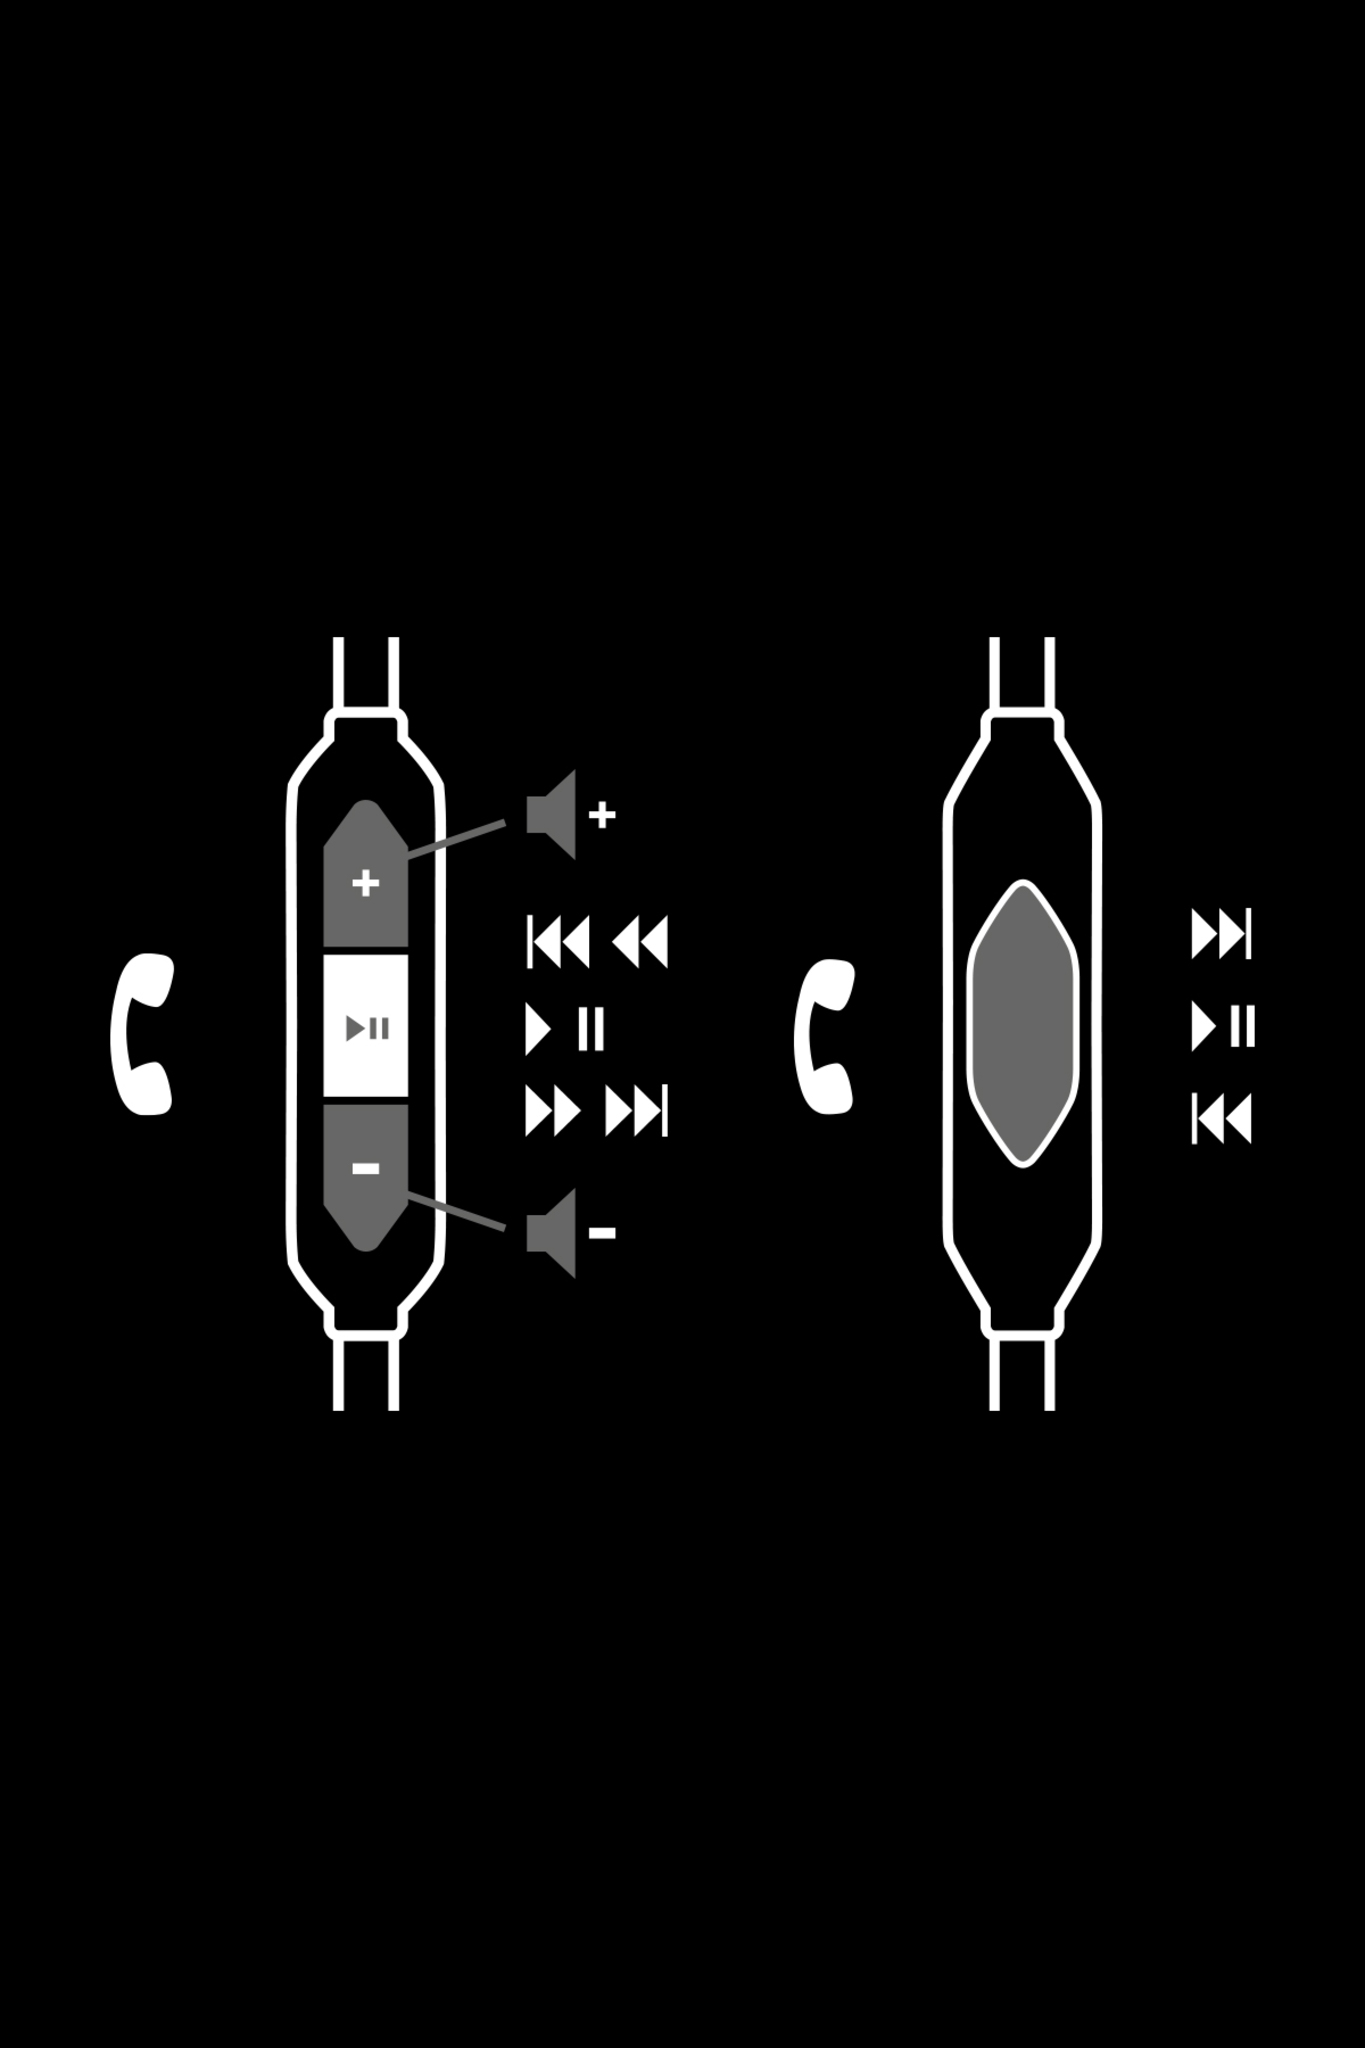 Image showing the control functions of the 3-Button and 1-Button Zn models